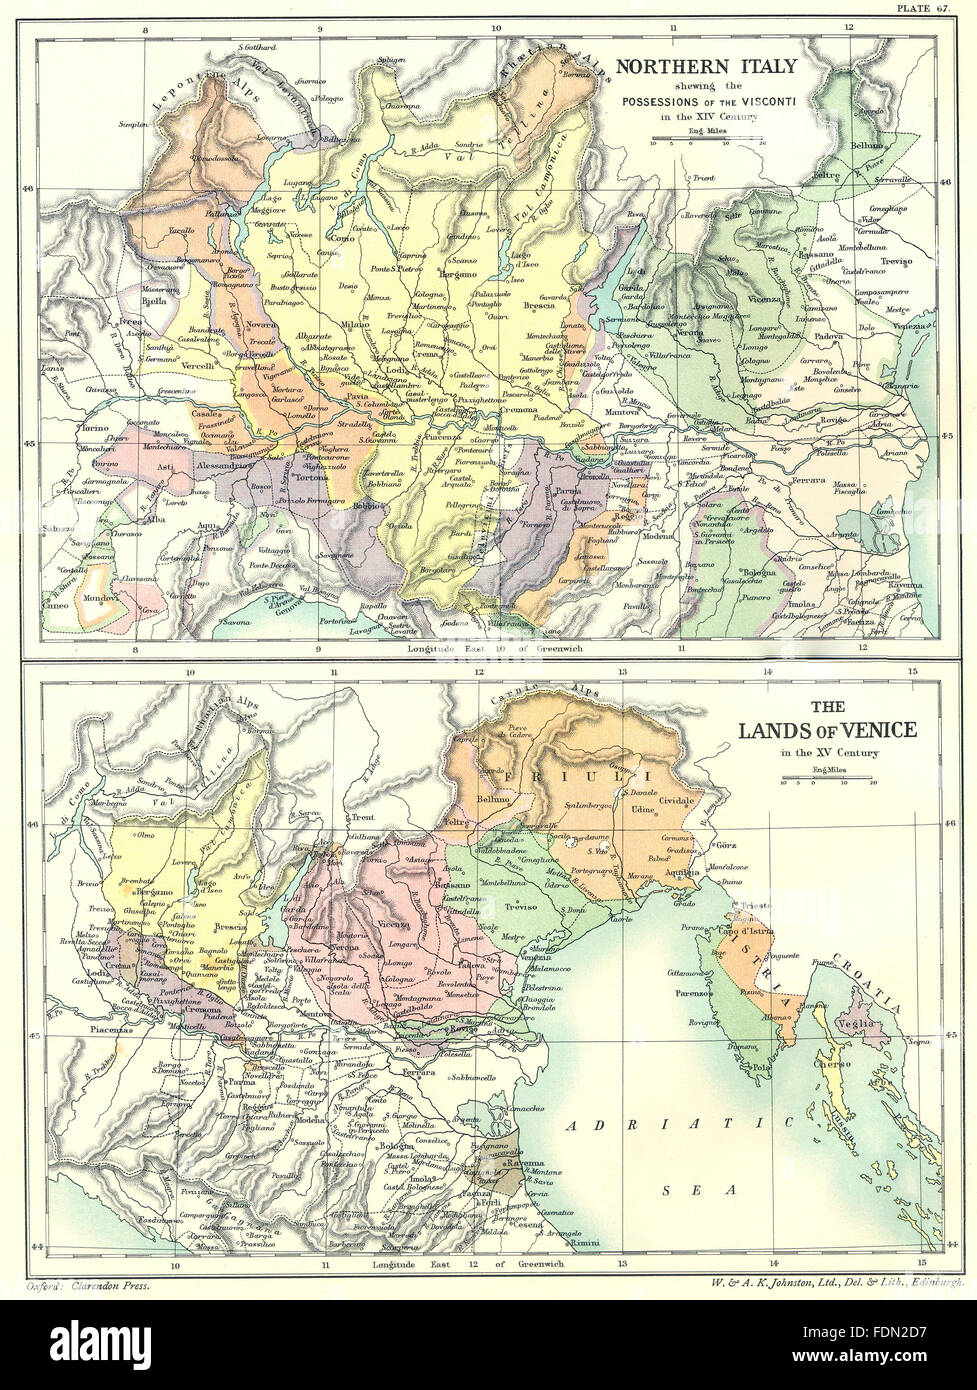 Italy northern possessions of visconti xiv century lands venice italy northern possessions of visconti xiv century lands venice 15c 1903 map gumiabroncs Images